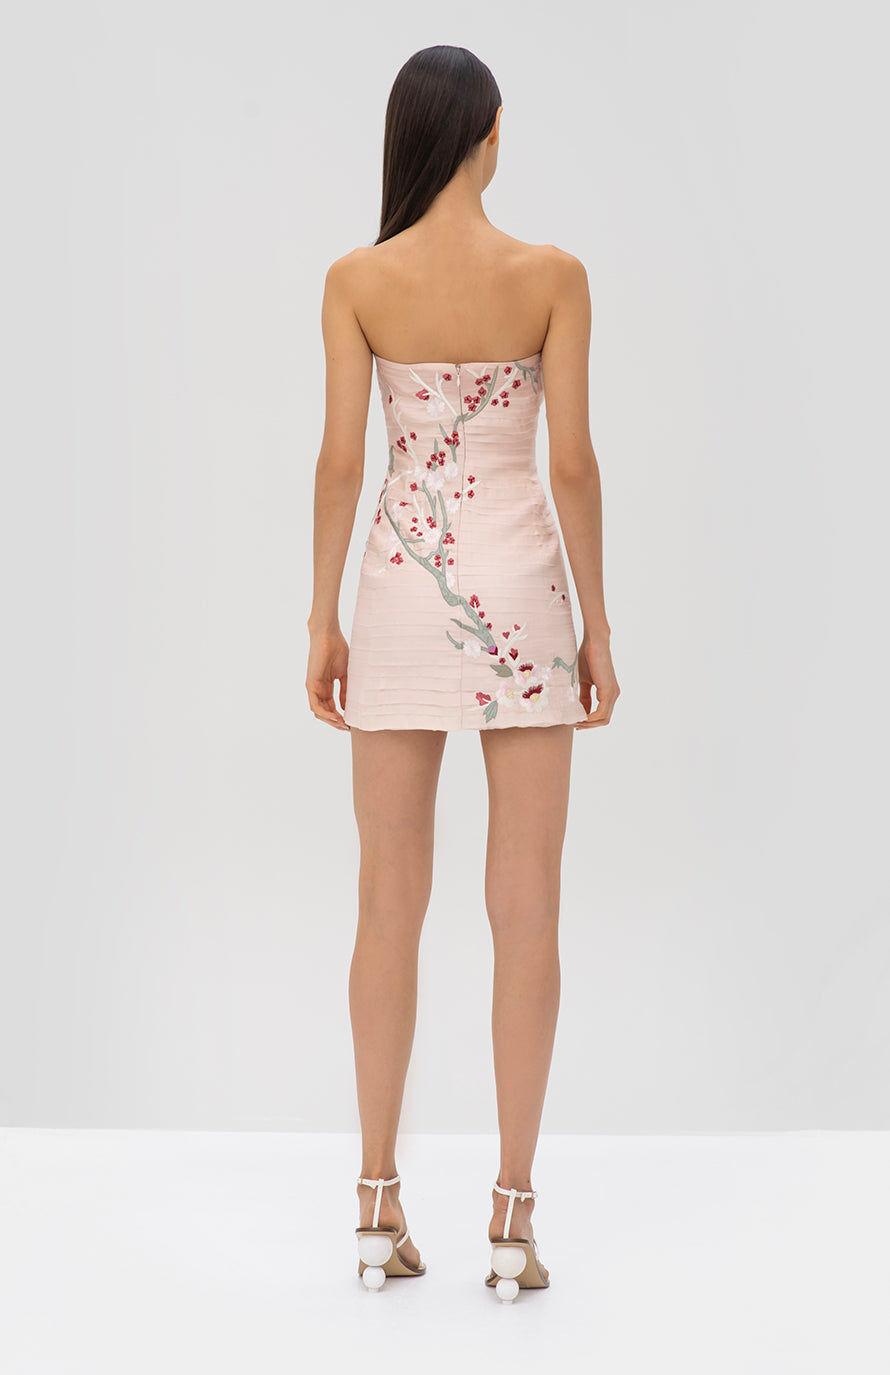 Alexis Asuka Dress in Light Pink - Rear View